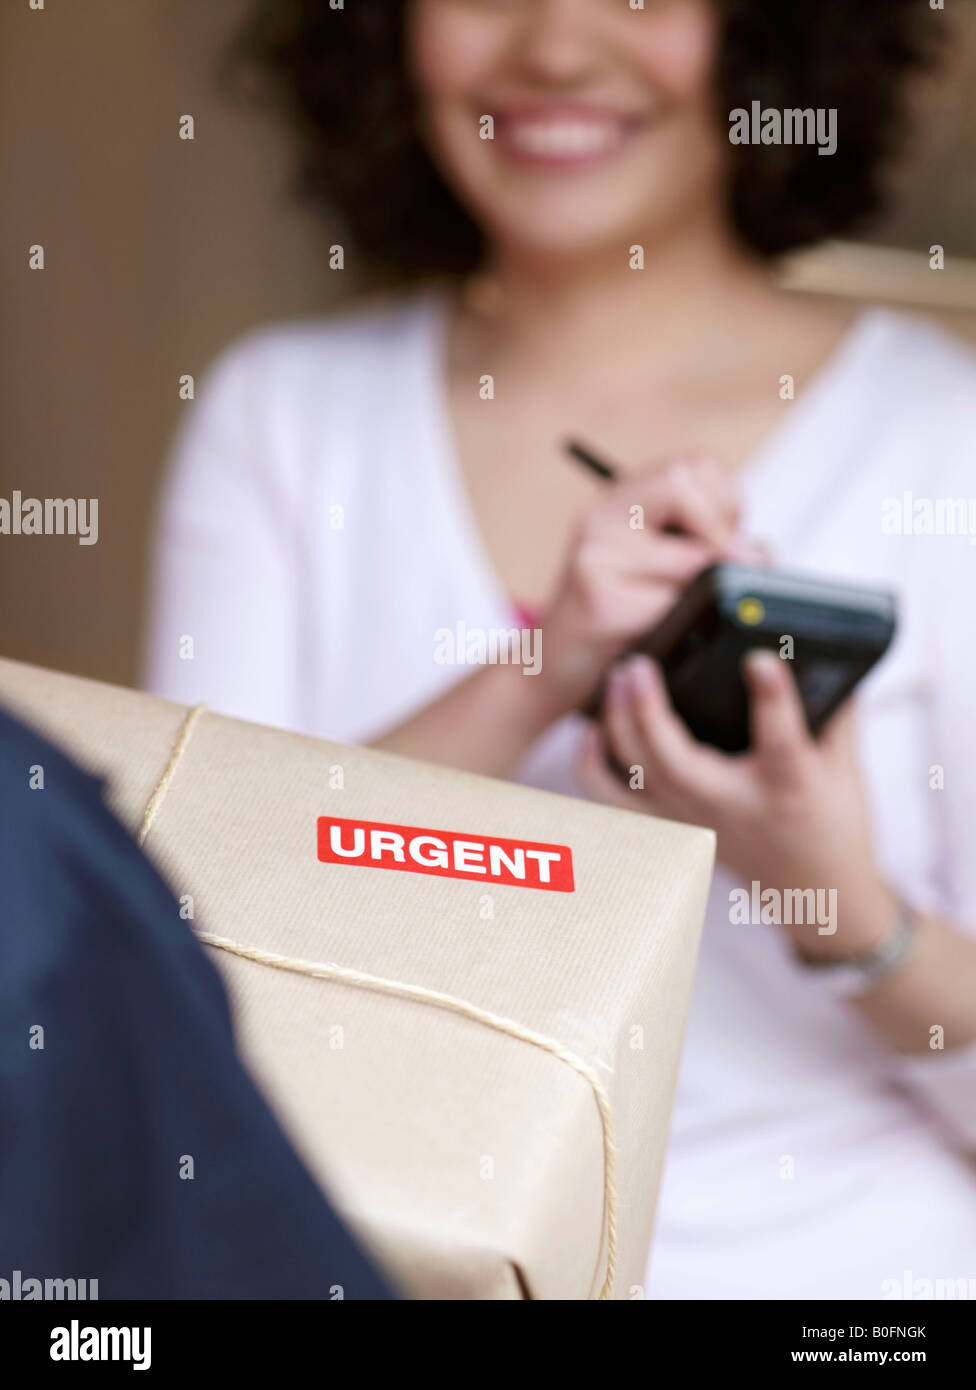 Woman signing for urgent delivery - Stock Image